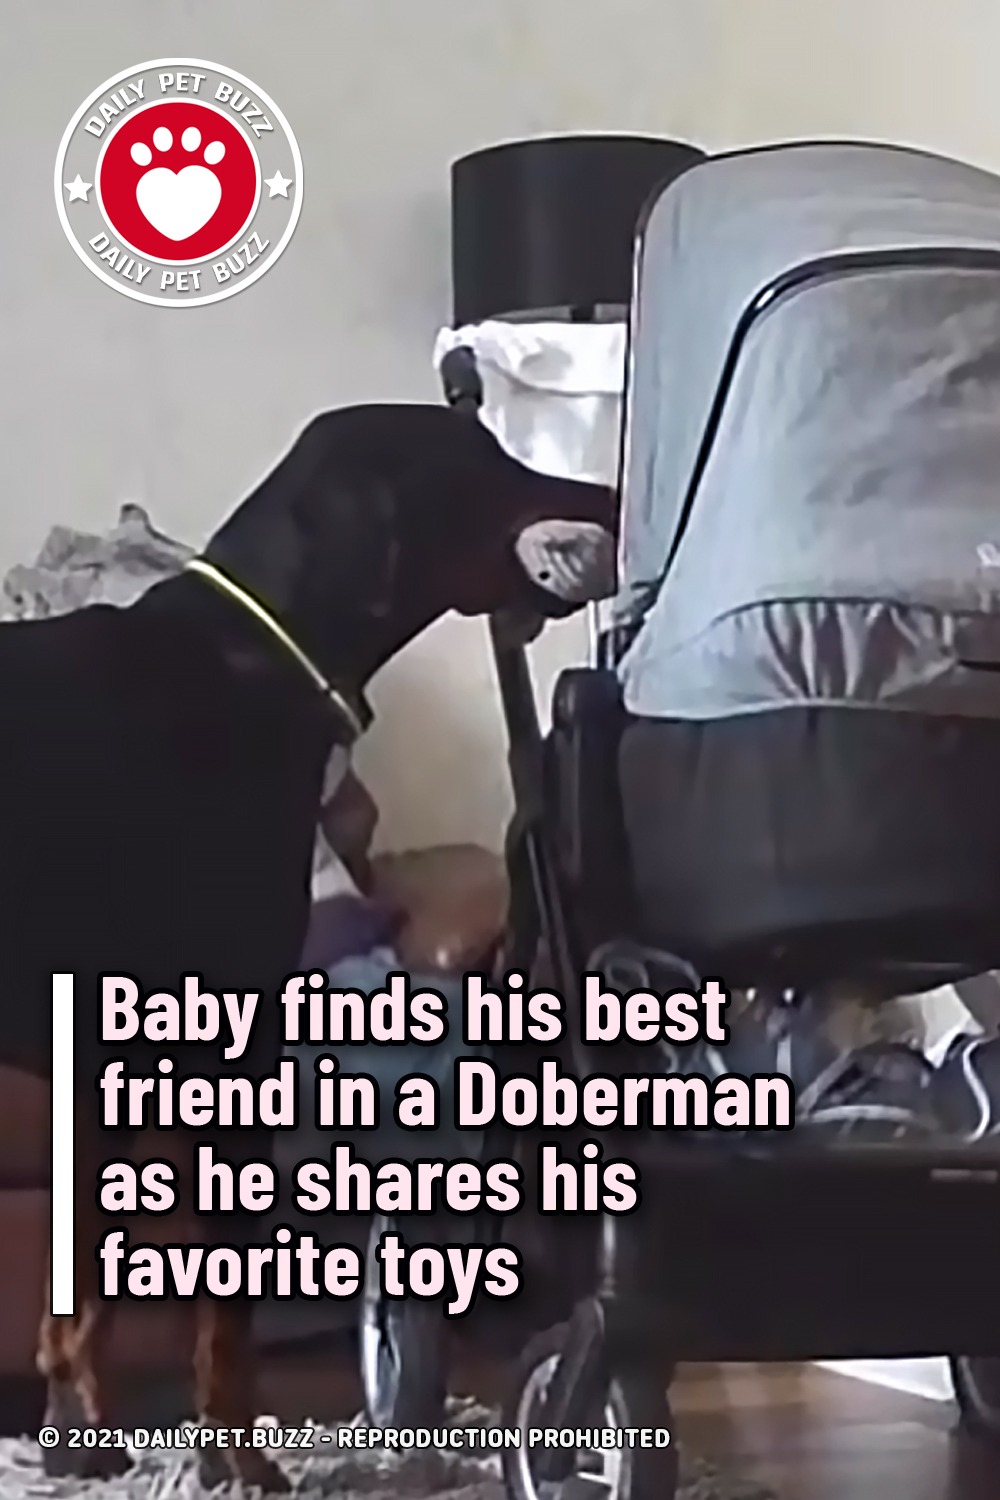 Baby finds his best friend in a Doberman as he shares his favorite toys